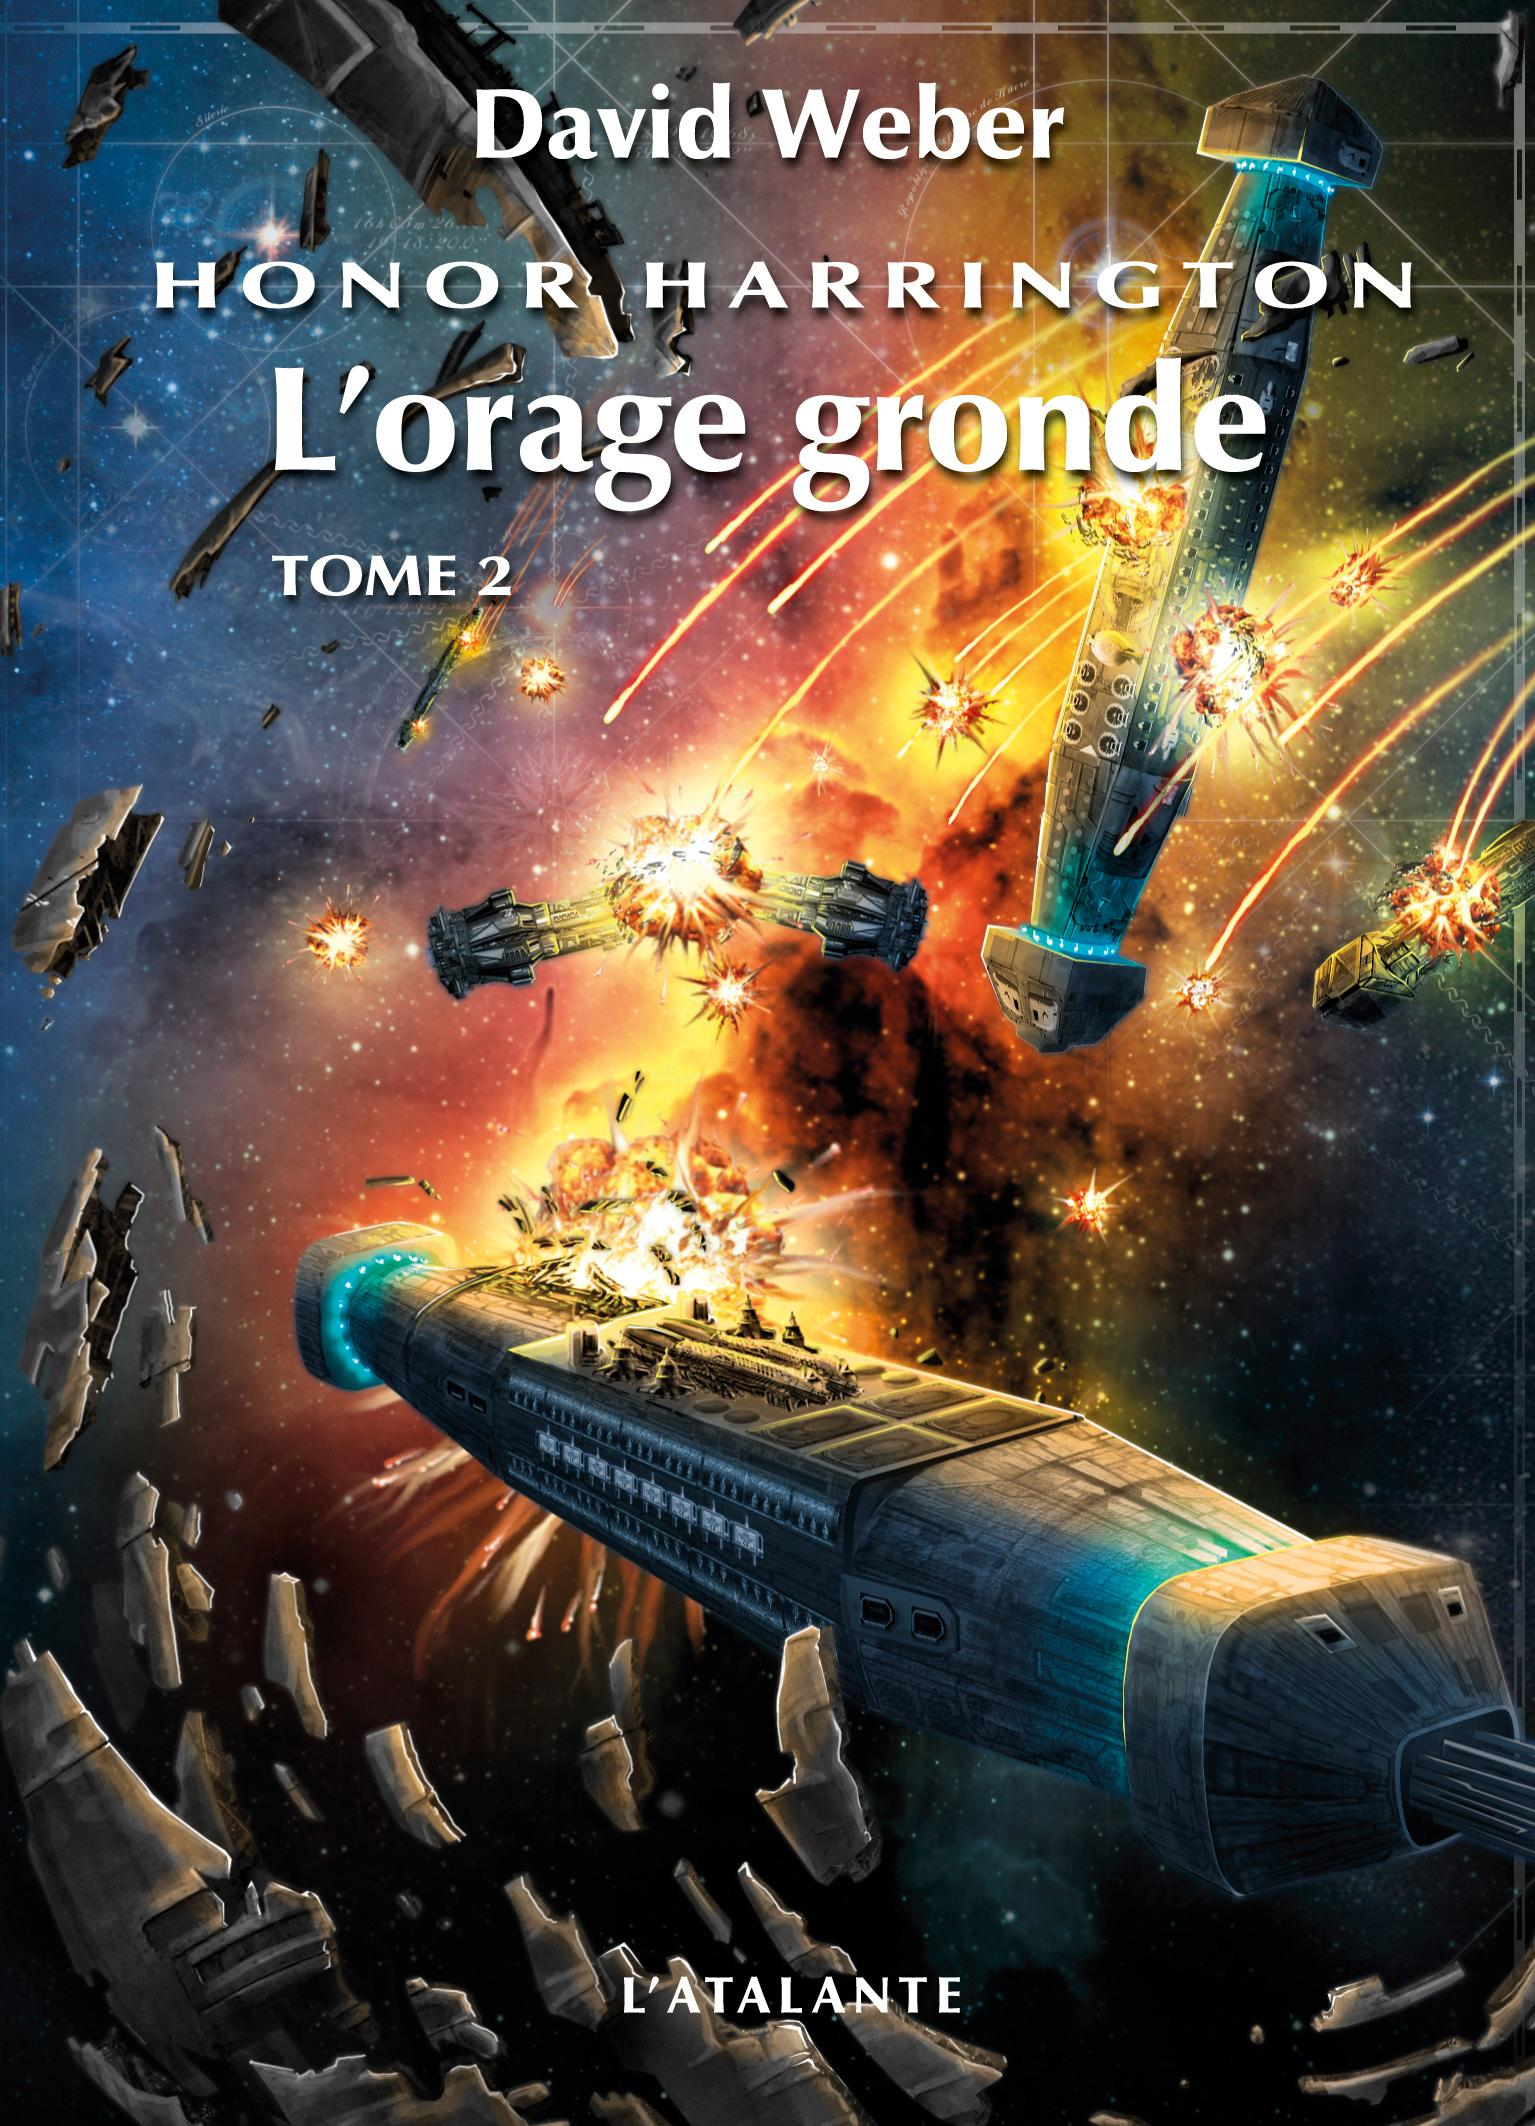 Cover French A Rising Thunder tome 2 by Genkis.jpg